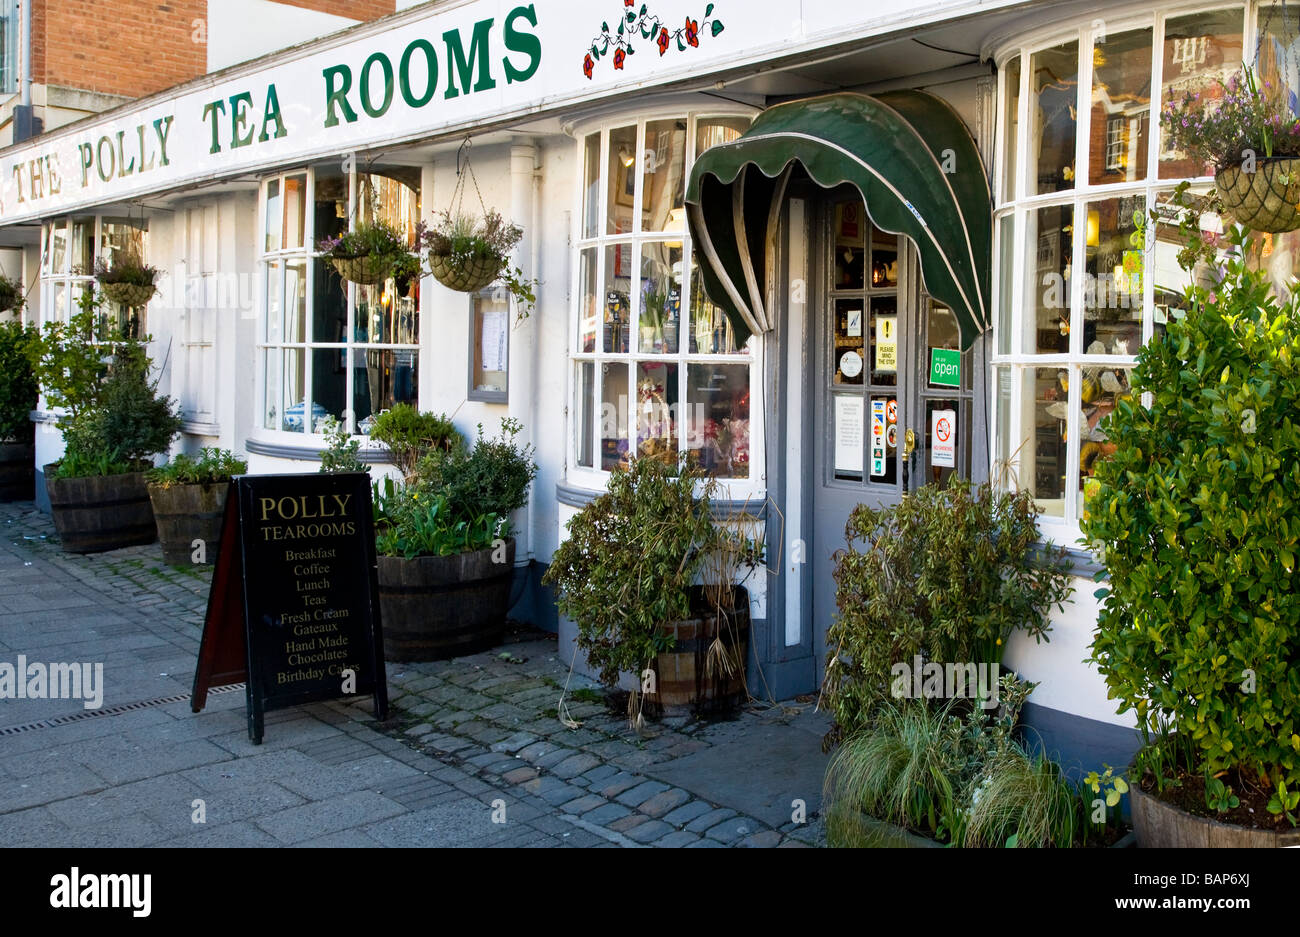 The Polly Tea Rooms in the High Street in the typical English market town of Marlborough Wiltshire England UK - Stock Image